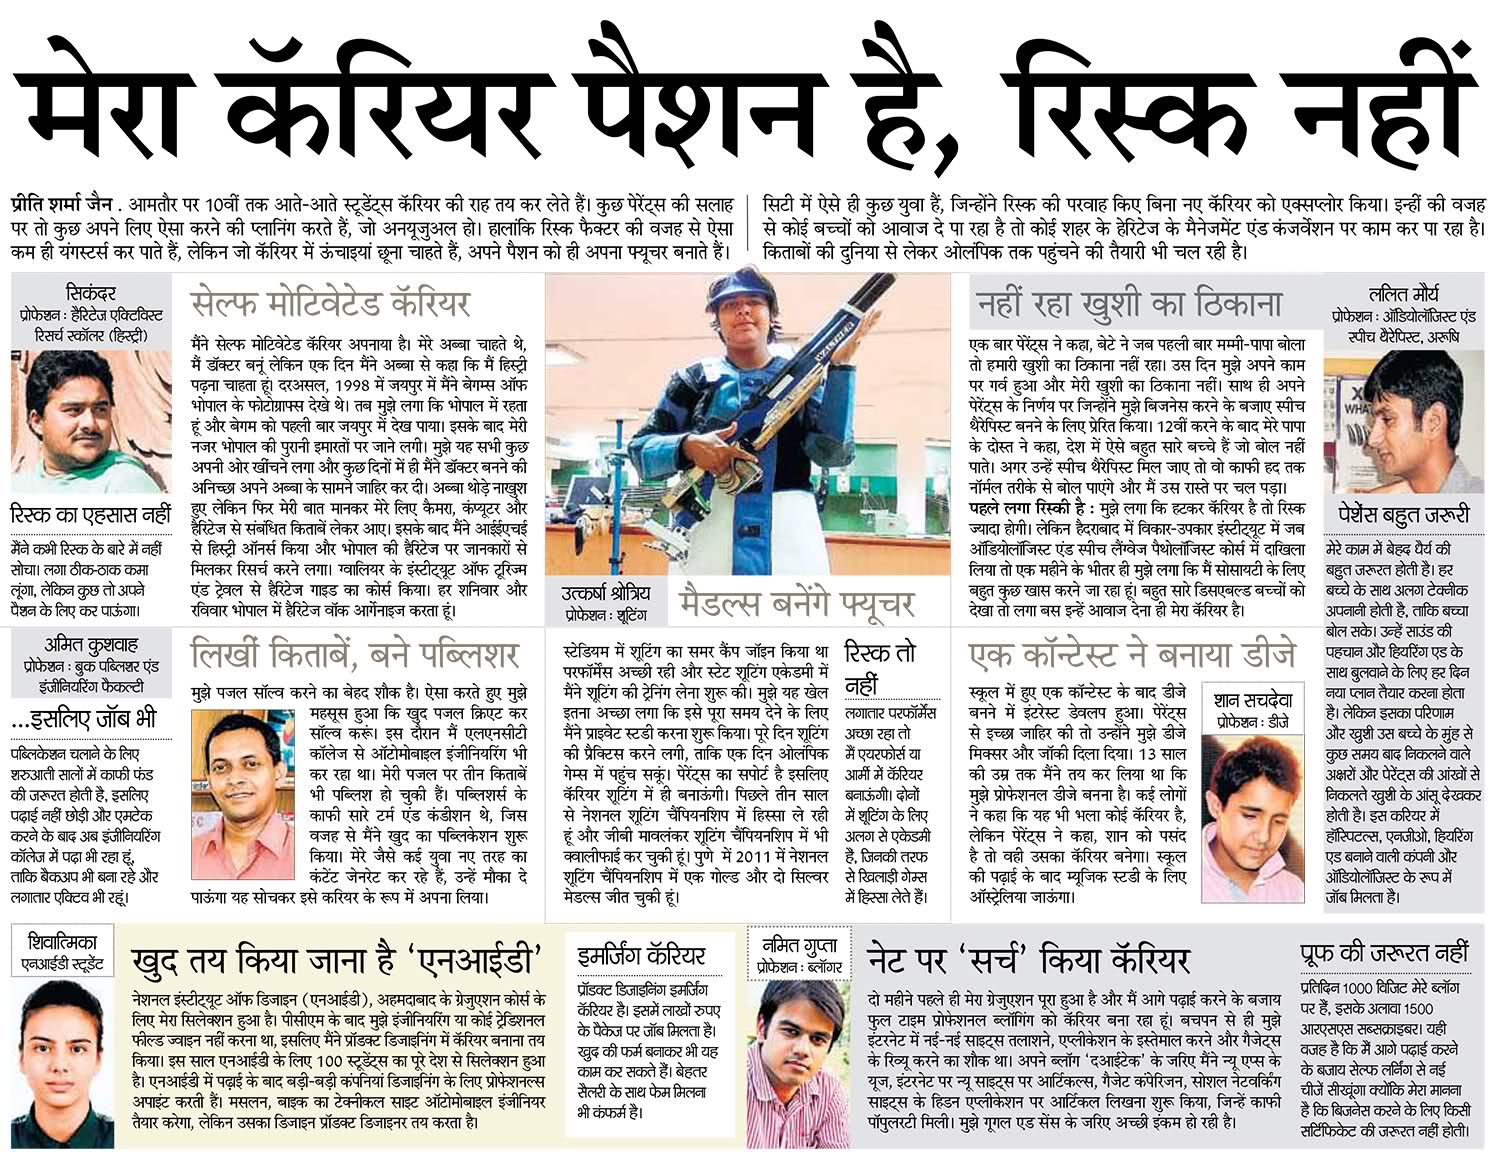 Published in Local Supplement (Bhopal Bhaskar) of Dainik Bhaskar. Dated 12th June, 2012.